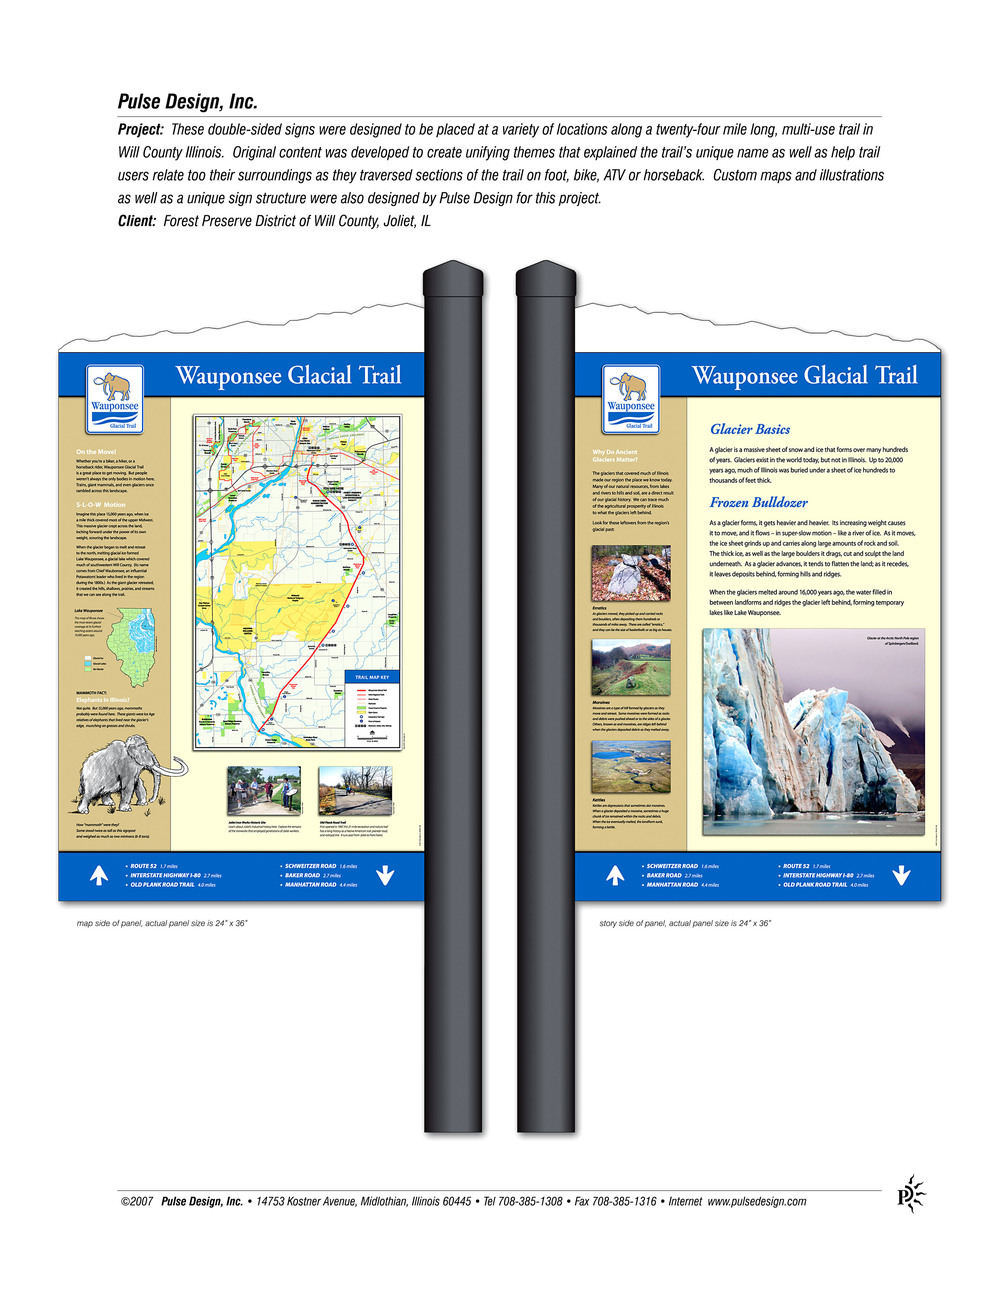 Wauponsee-Glacial-Trail-Signs-1-Pulse-Design-Inc.jpg